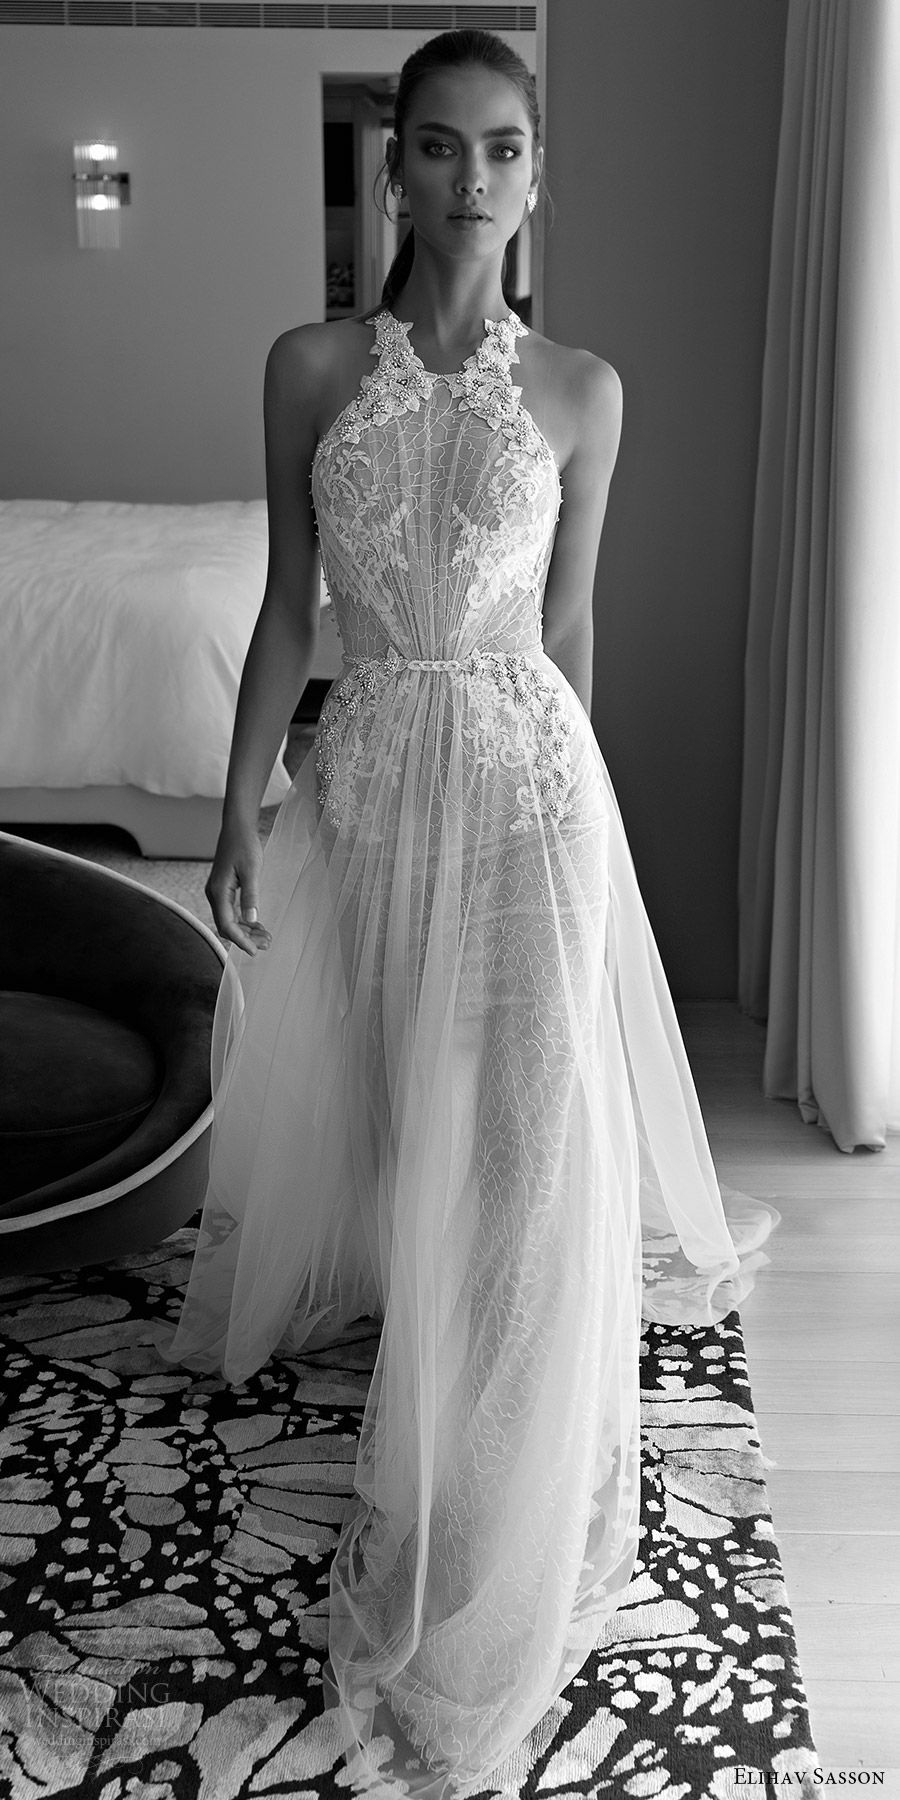 Elihav Sasson 2018 Wedding Dresses Vintage Jewellery Bridal